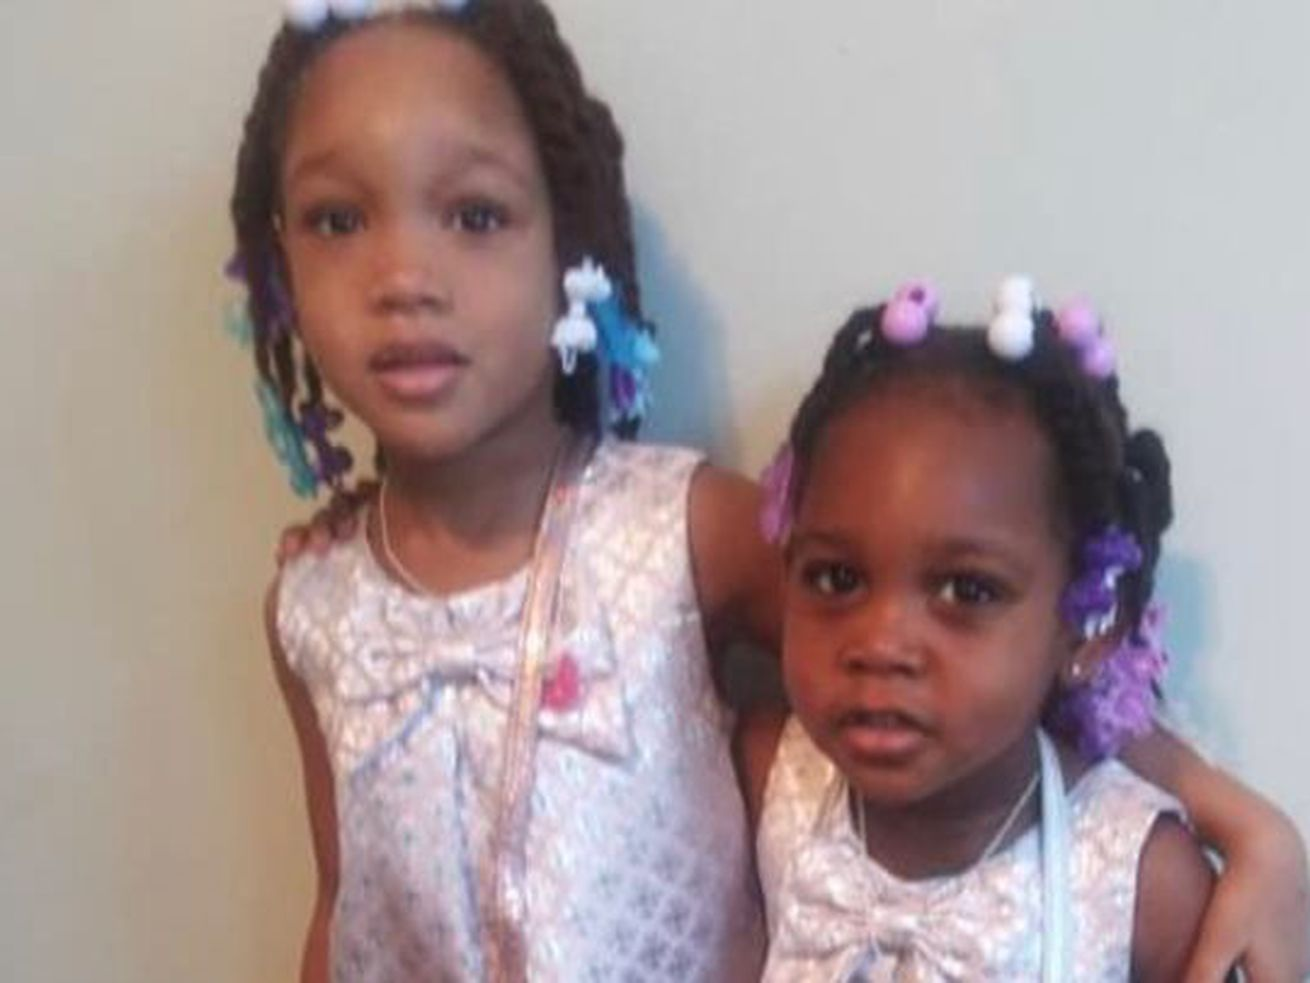 Serenity Broughton was killed and her younger sister, Aubrey, was wounded in a shooting Aug. 15 in Belmont Central.